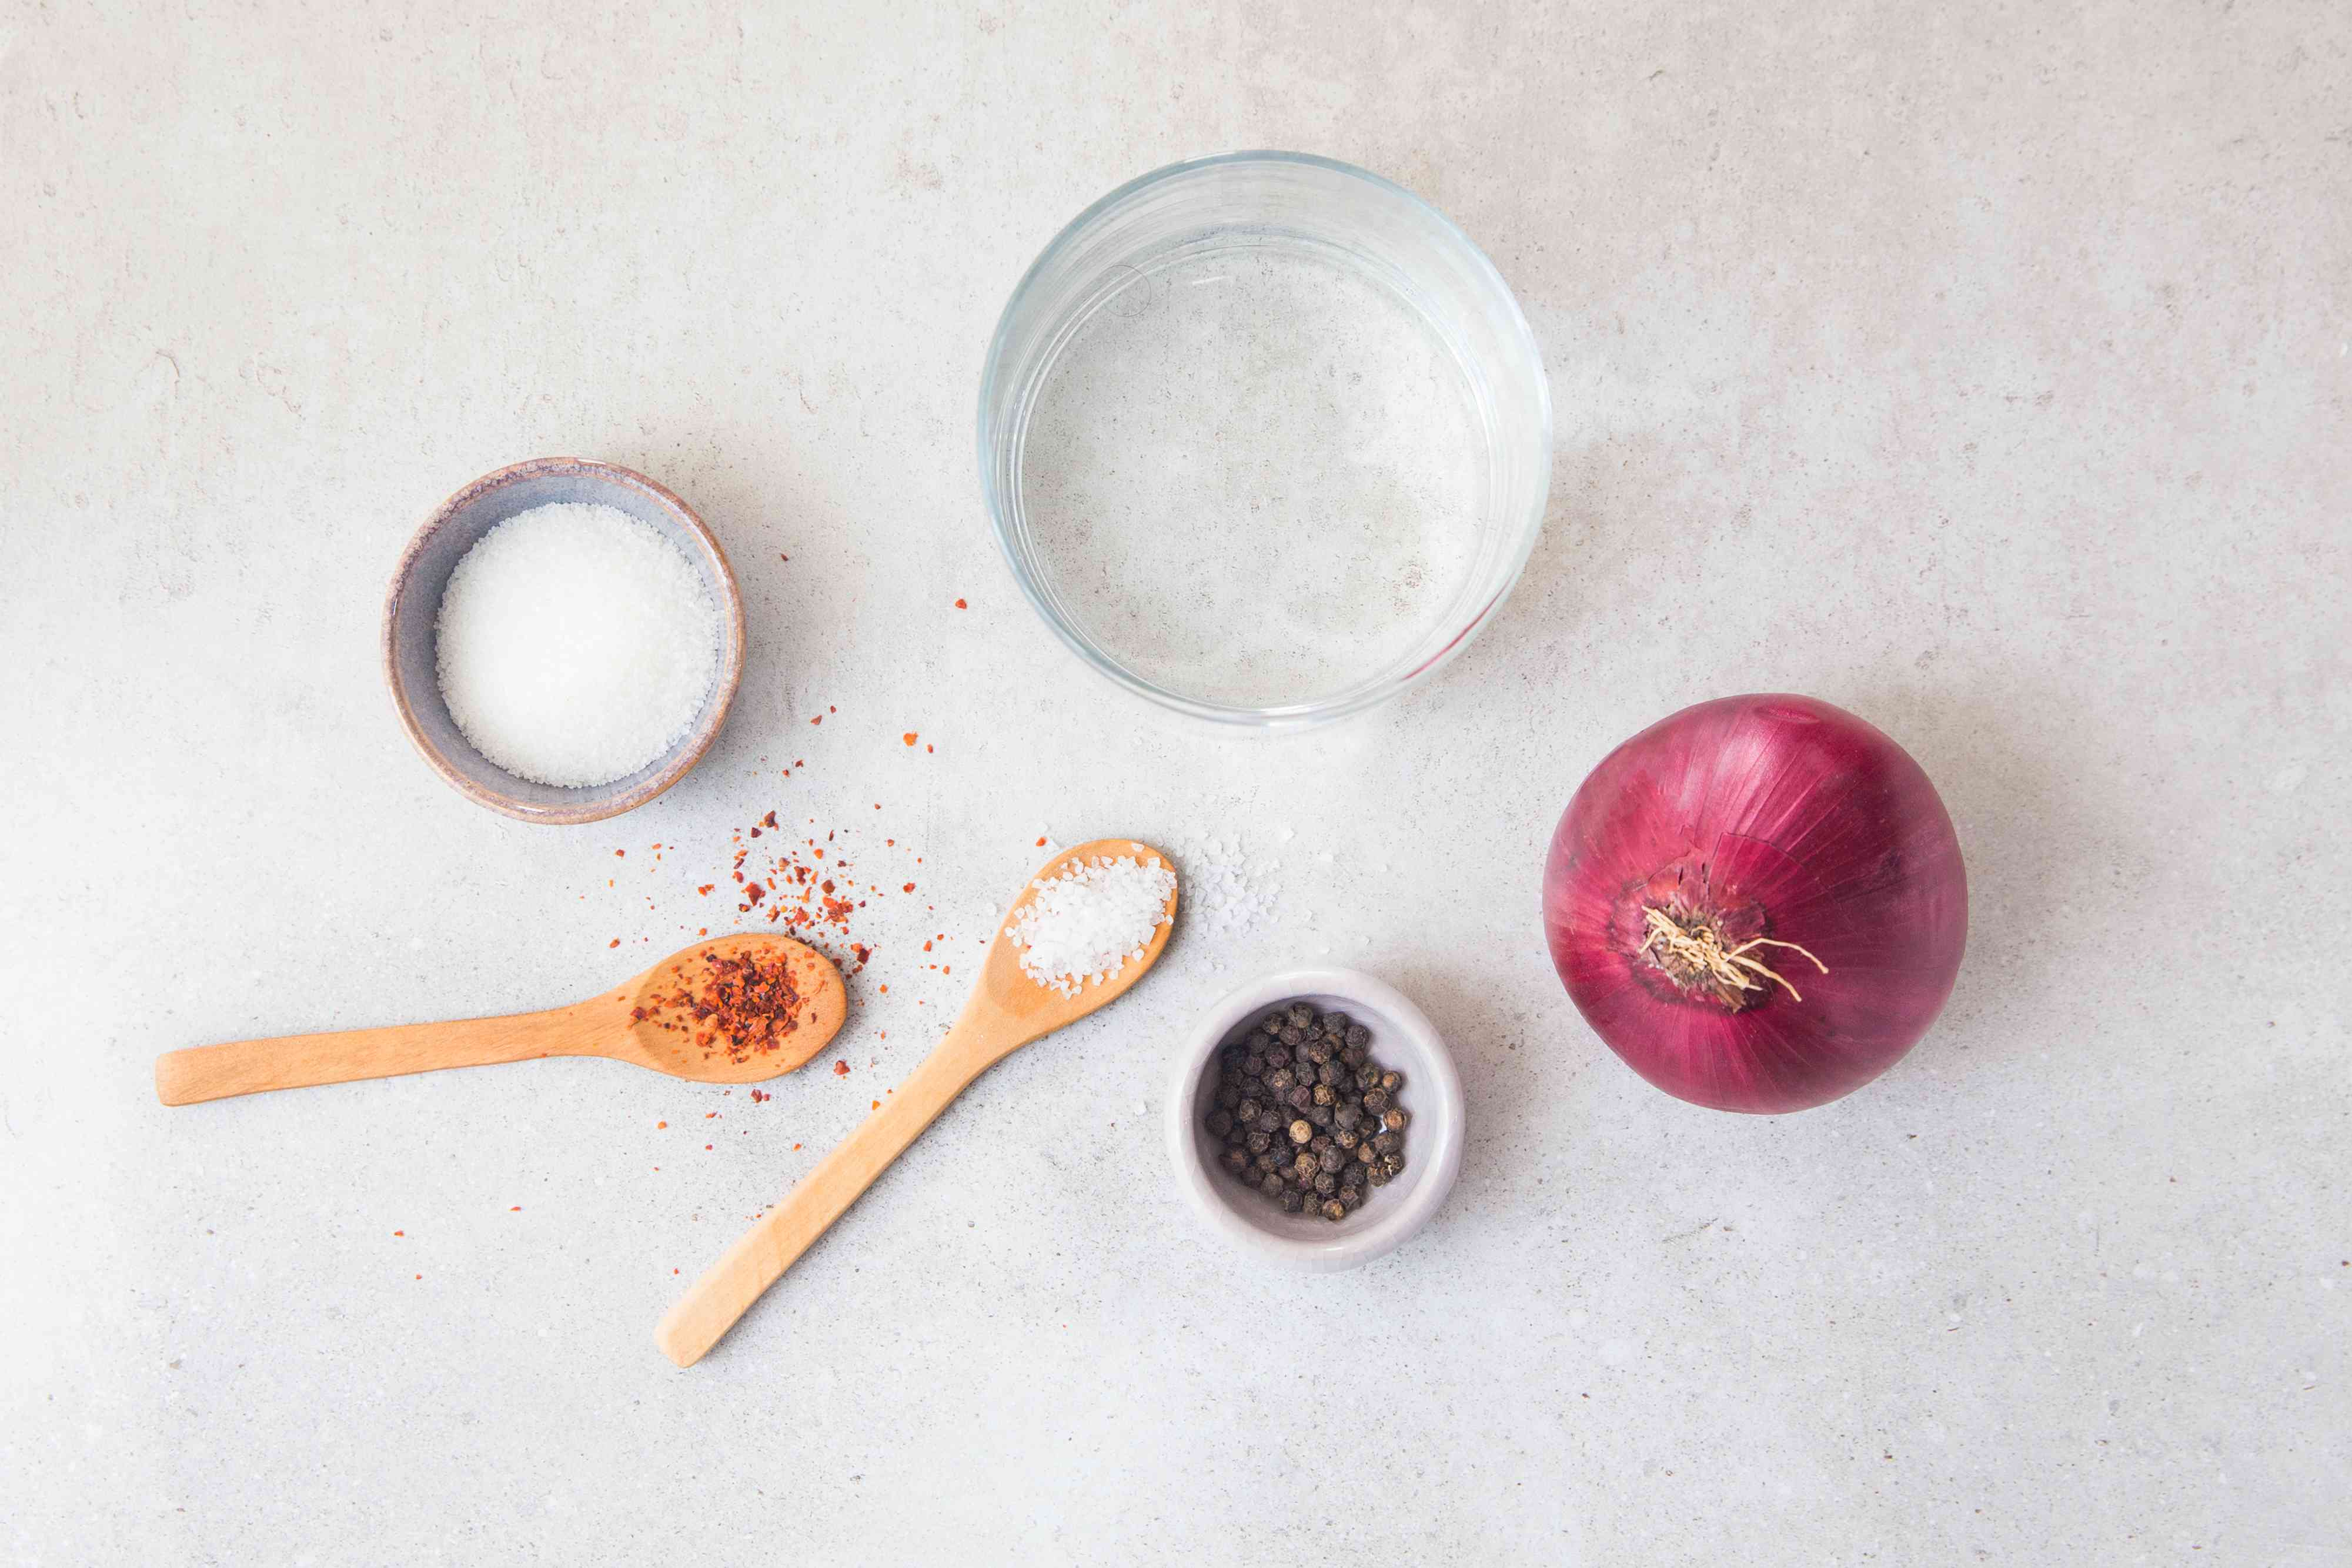 Ingredients for quick pickled red onions